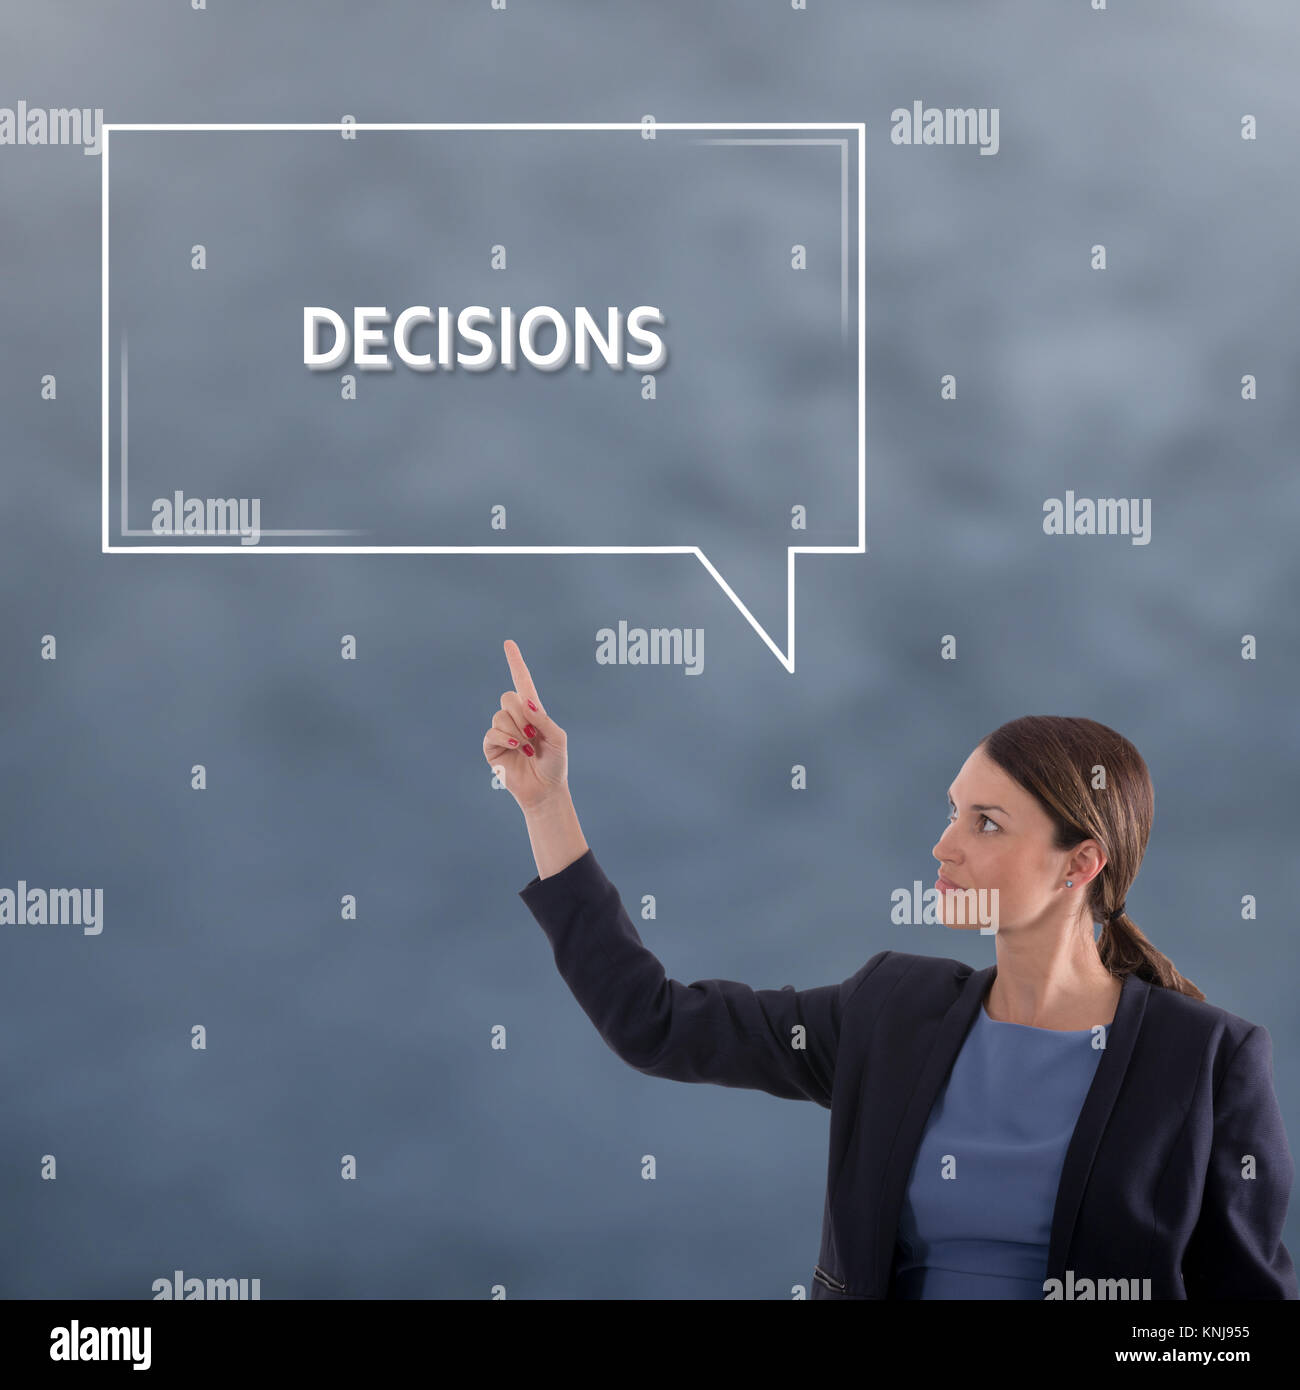 DECISIONS Business Concept. Business Woman Graphic Concept - Stock Image